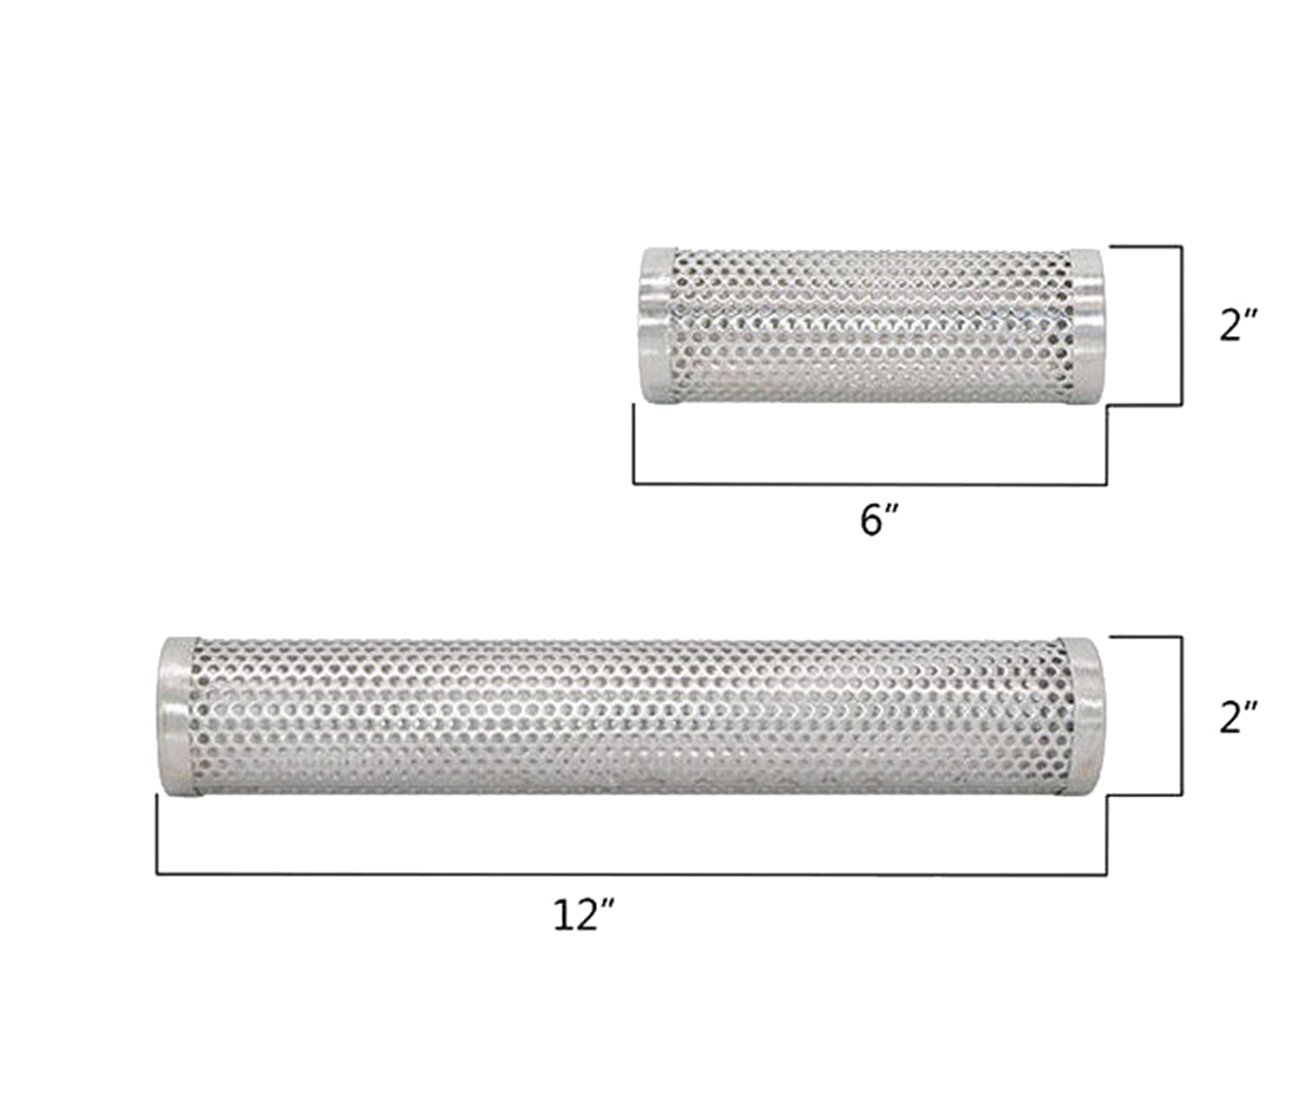 Siomentdi BBQ Stainless Steel Perforated Mesh Smoker Tube, Round Smoke Generator Outdoors Barbecue Tools Kitchenware